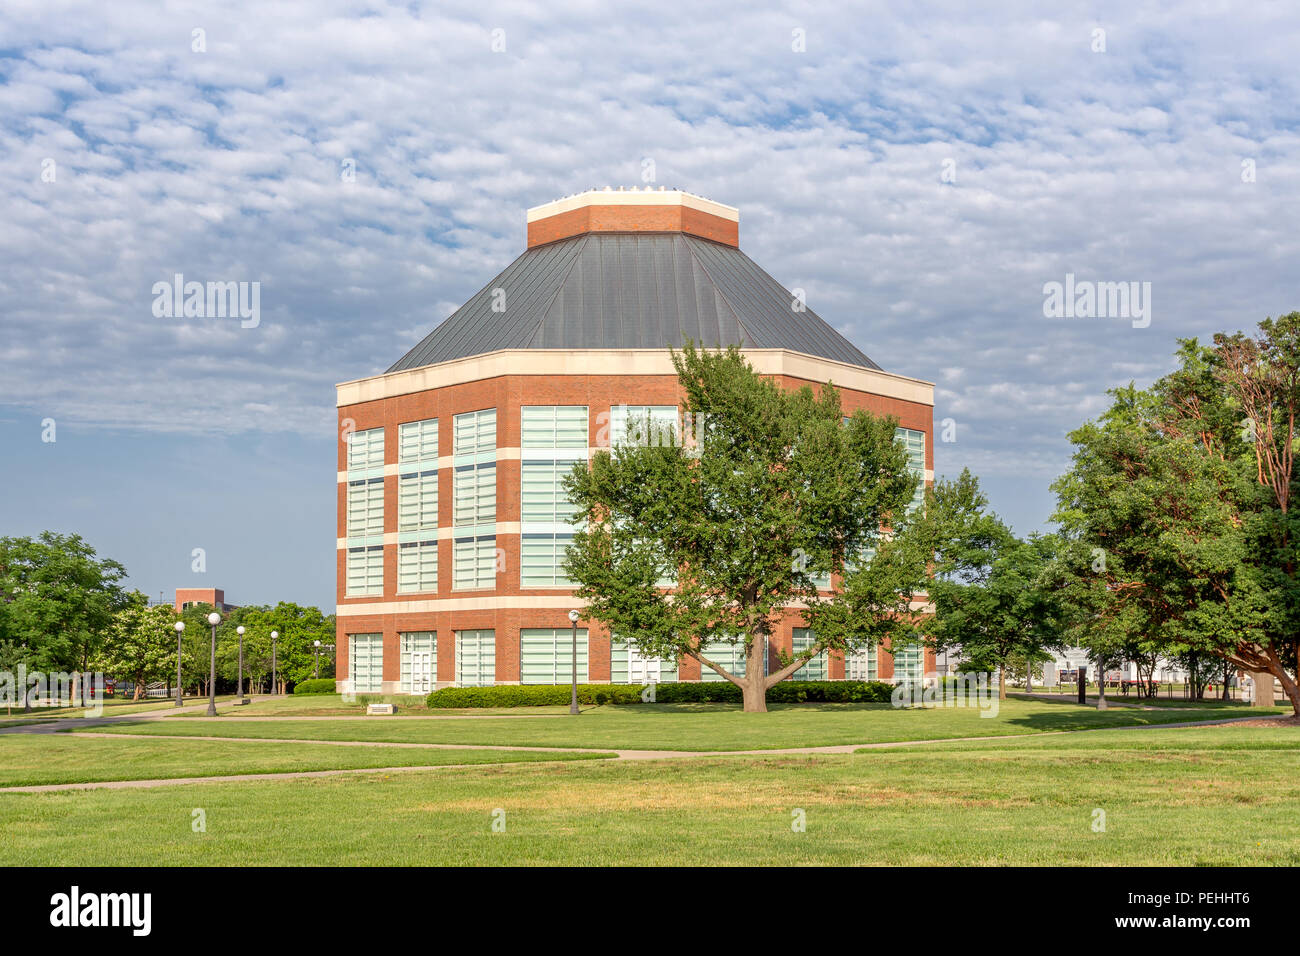 URBANA, IL/USA - JUNE 2, 2018: ACES Library and Alumni Center on the campus of the University of Illinois at Urbana–Champaign. - Stock Image